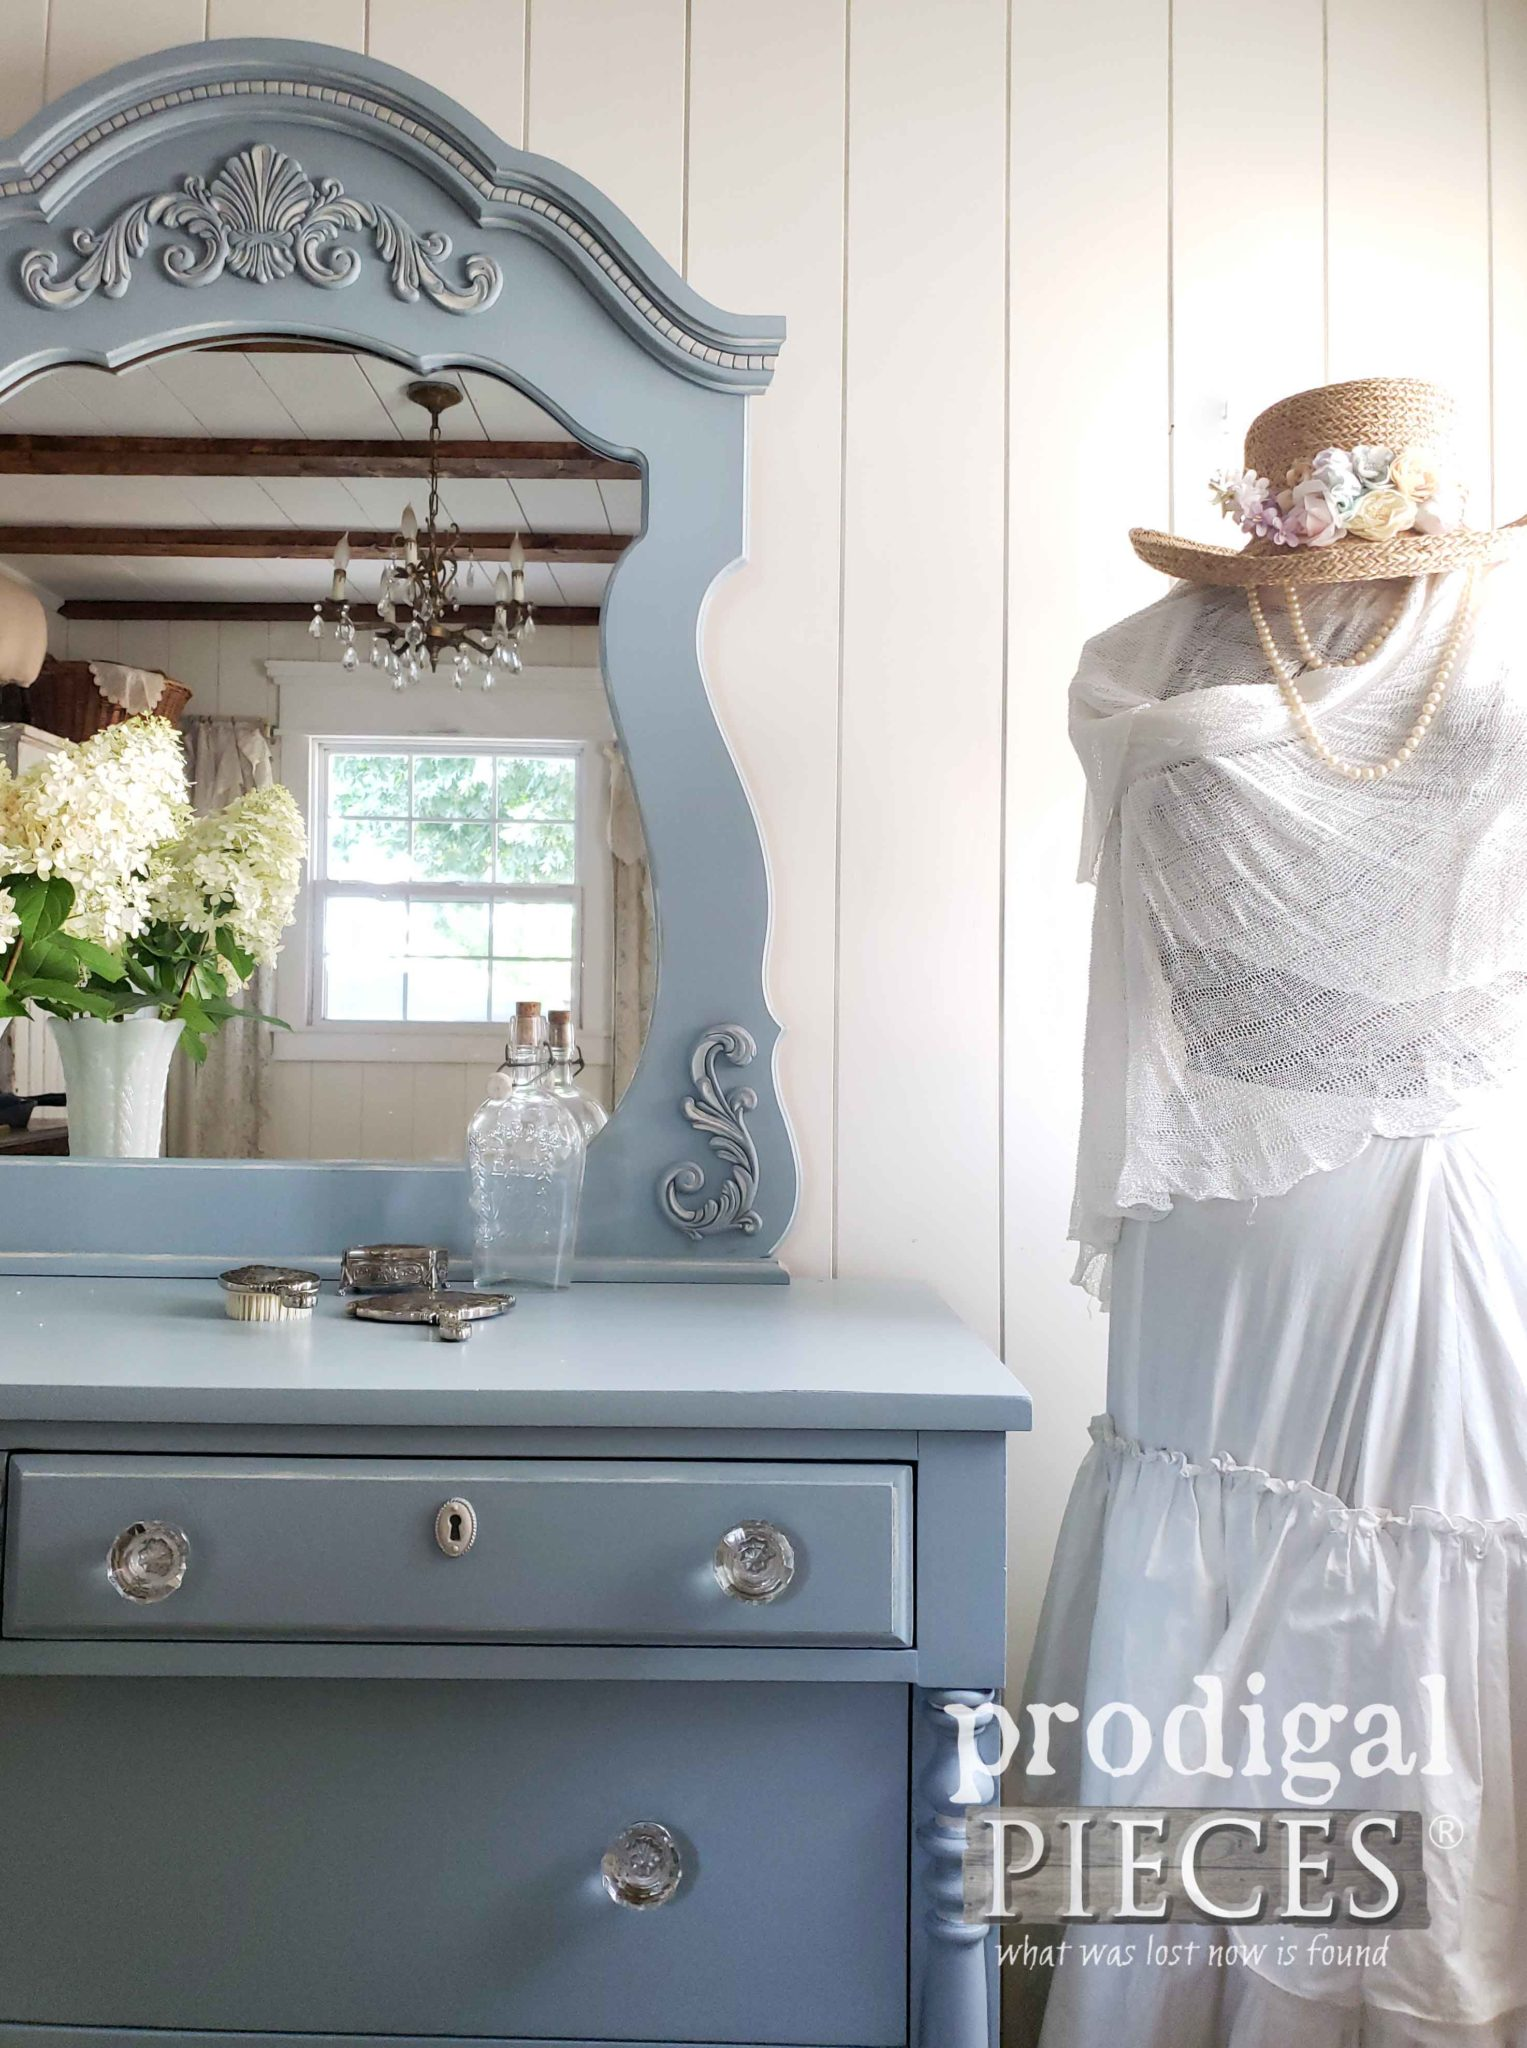 Beautifully Transformed Dresser Set in Blue by Larissa of Prodigal Pieces | prodigalpieces.com